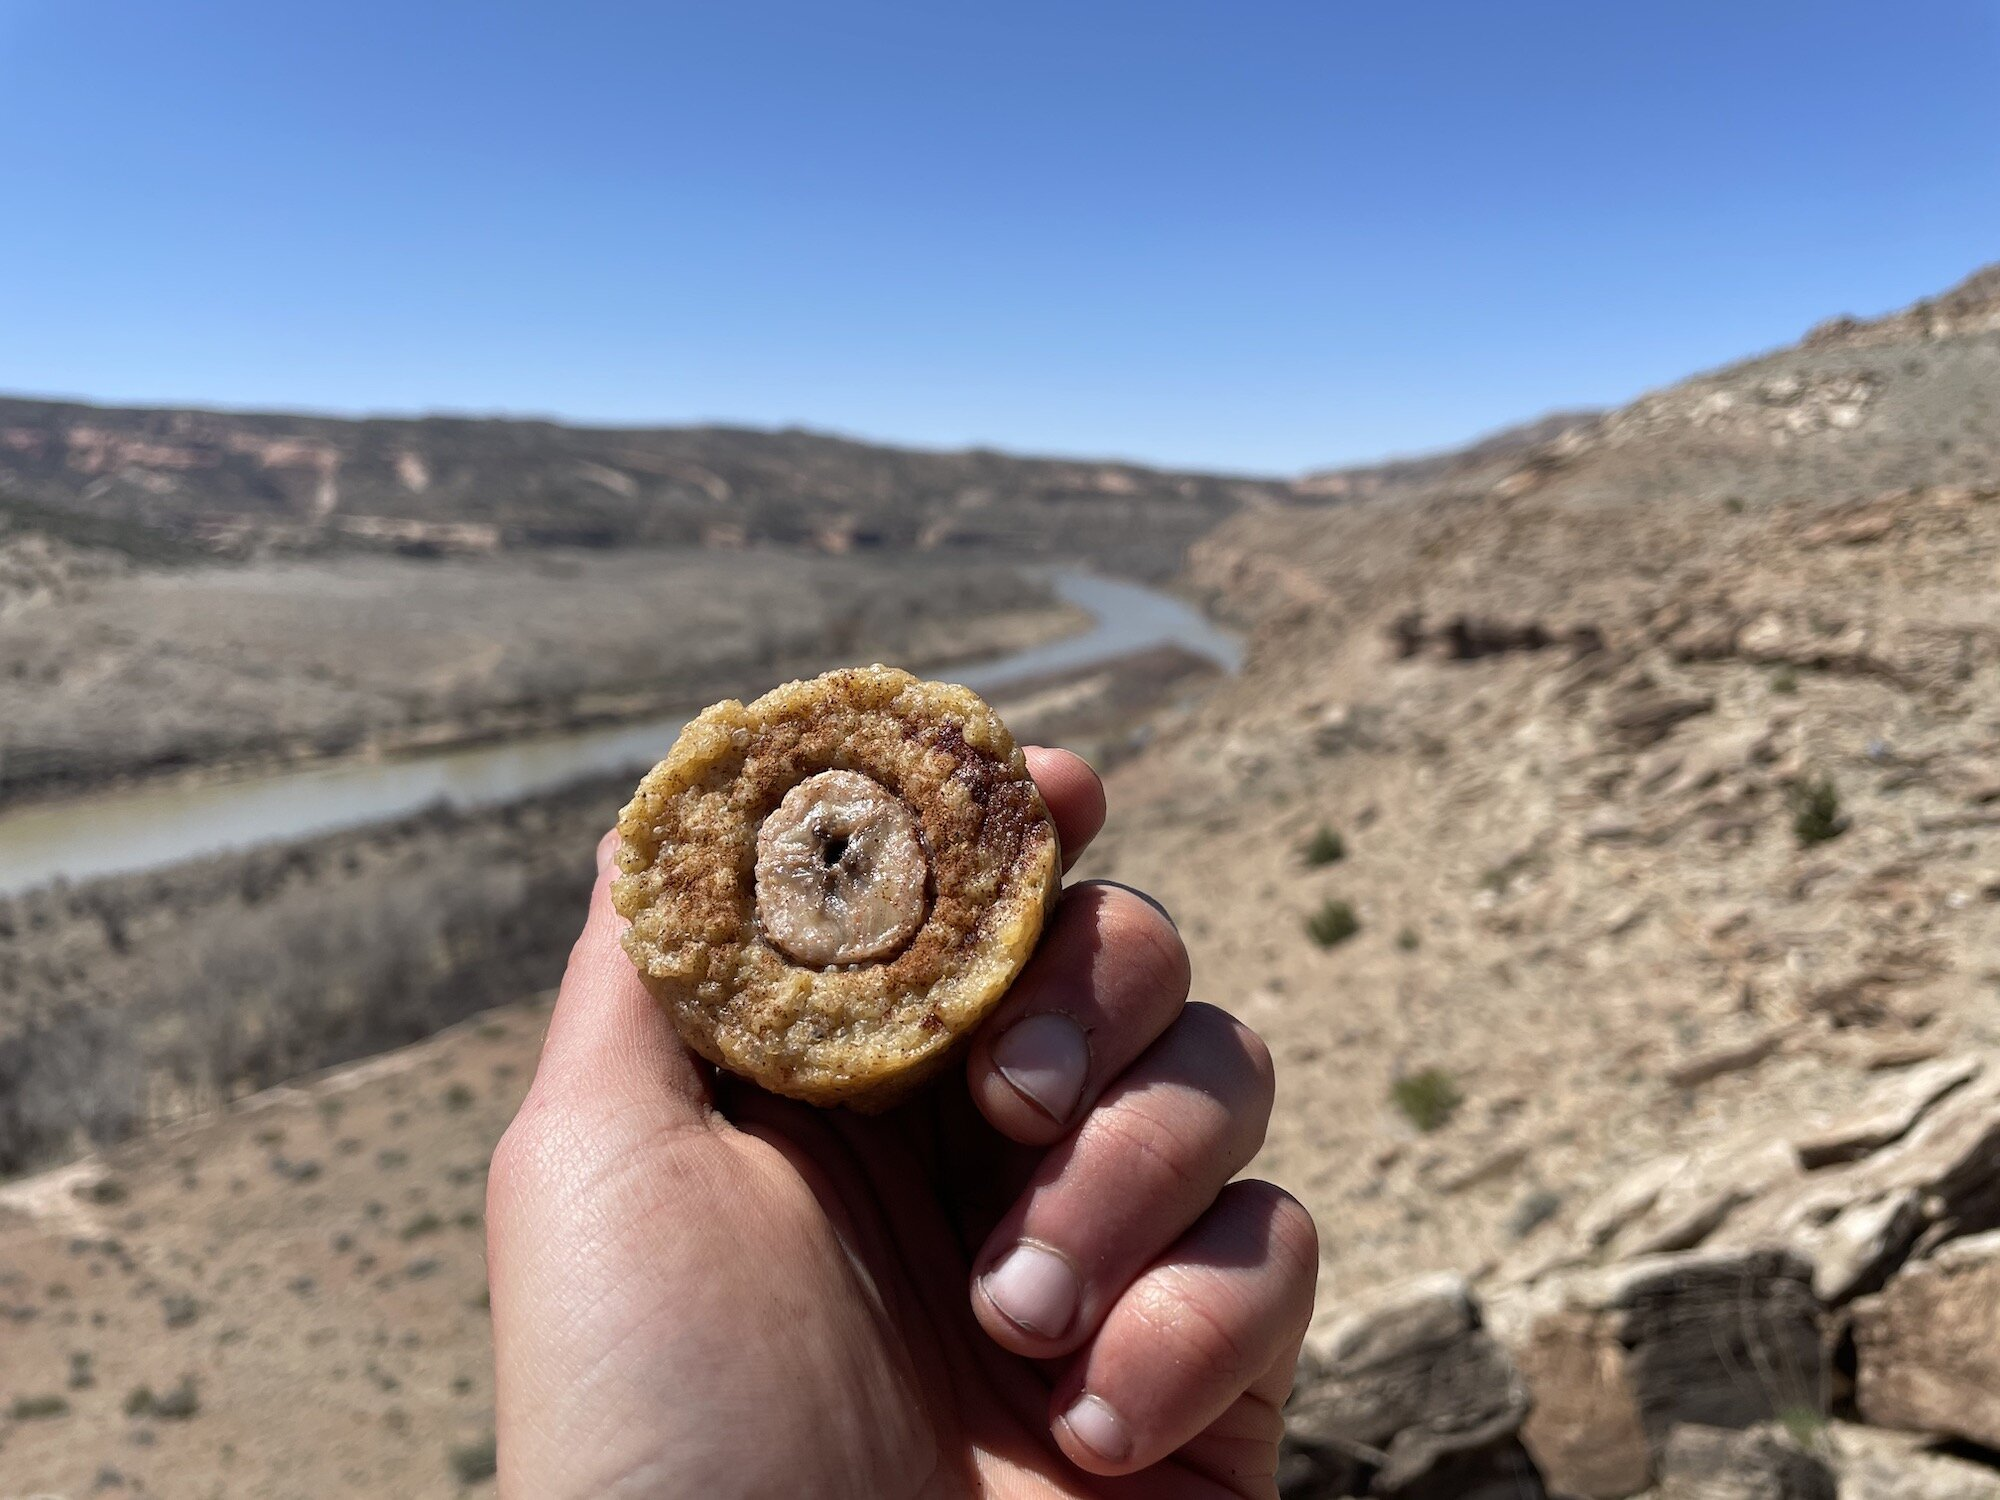 Banana Rice Muffin with Colorado River in background